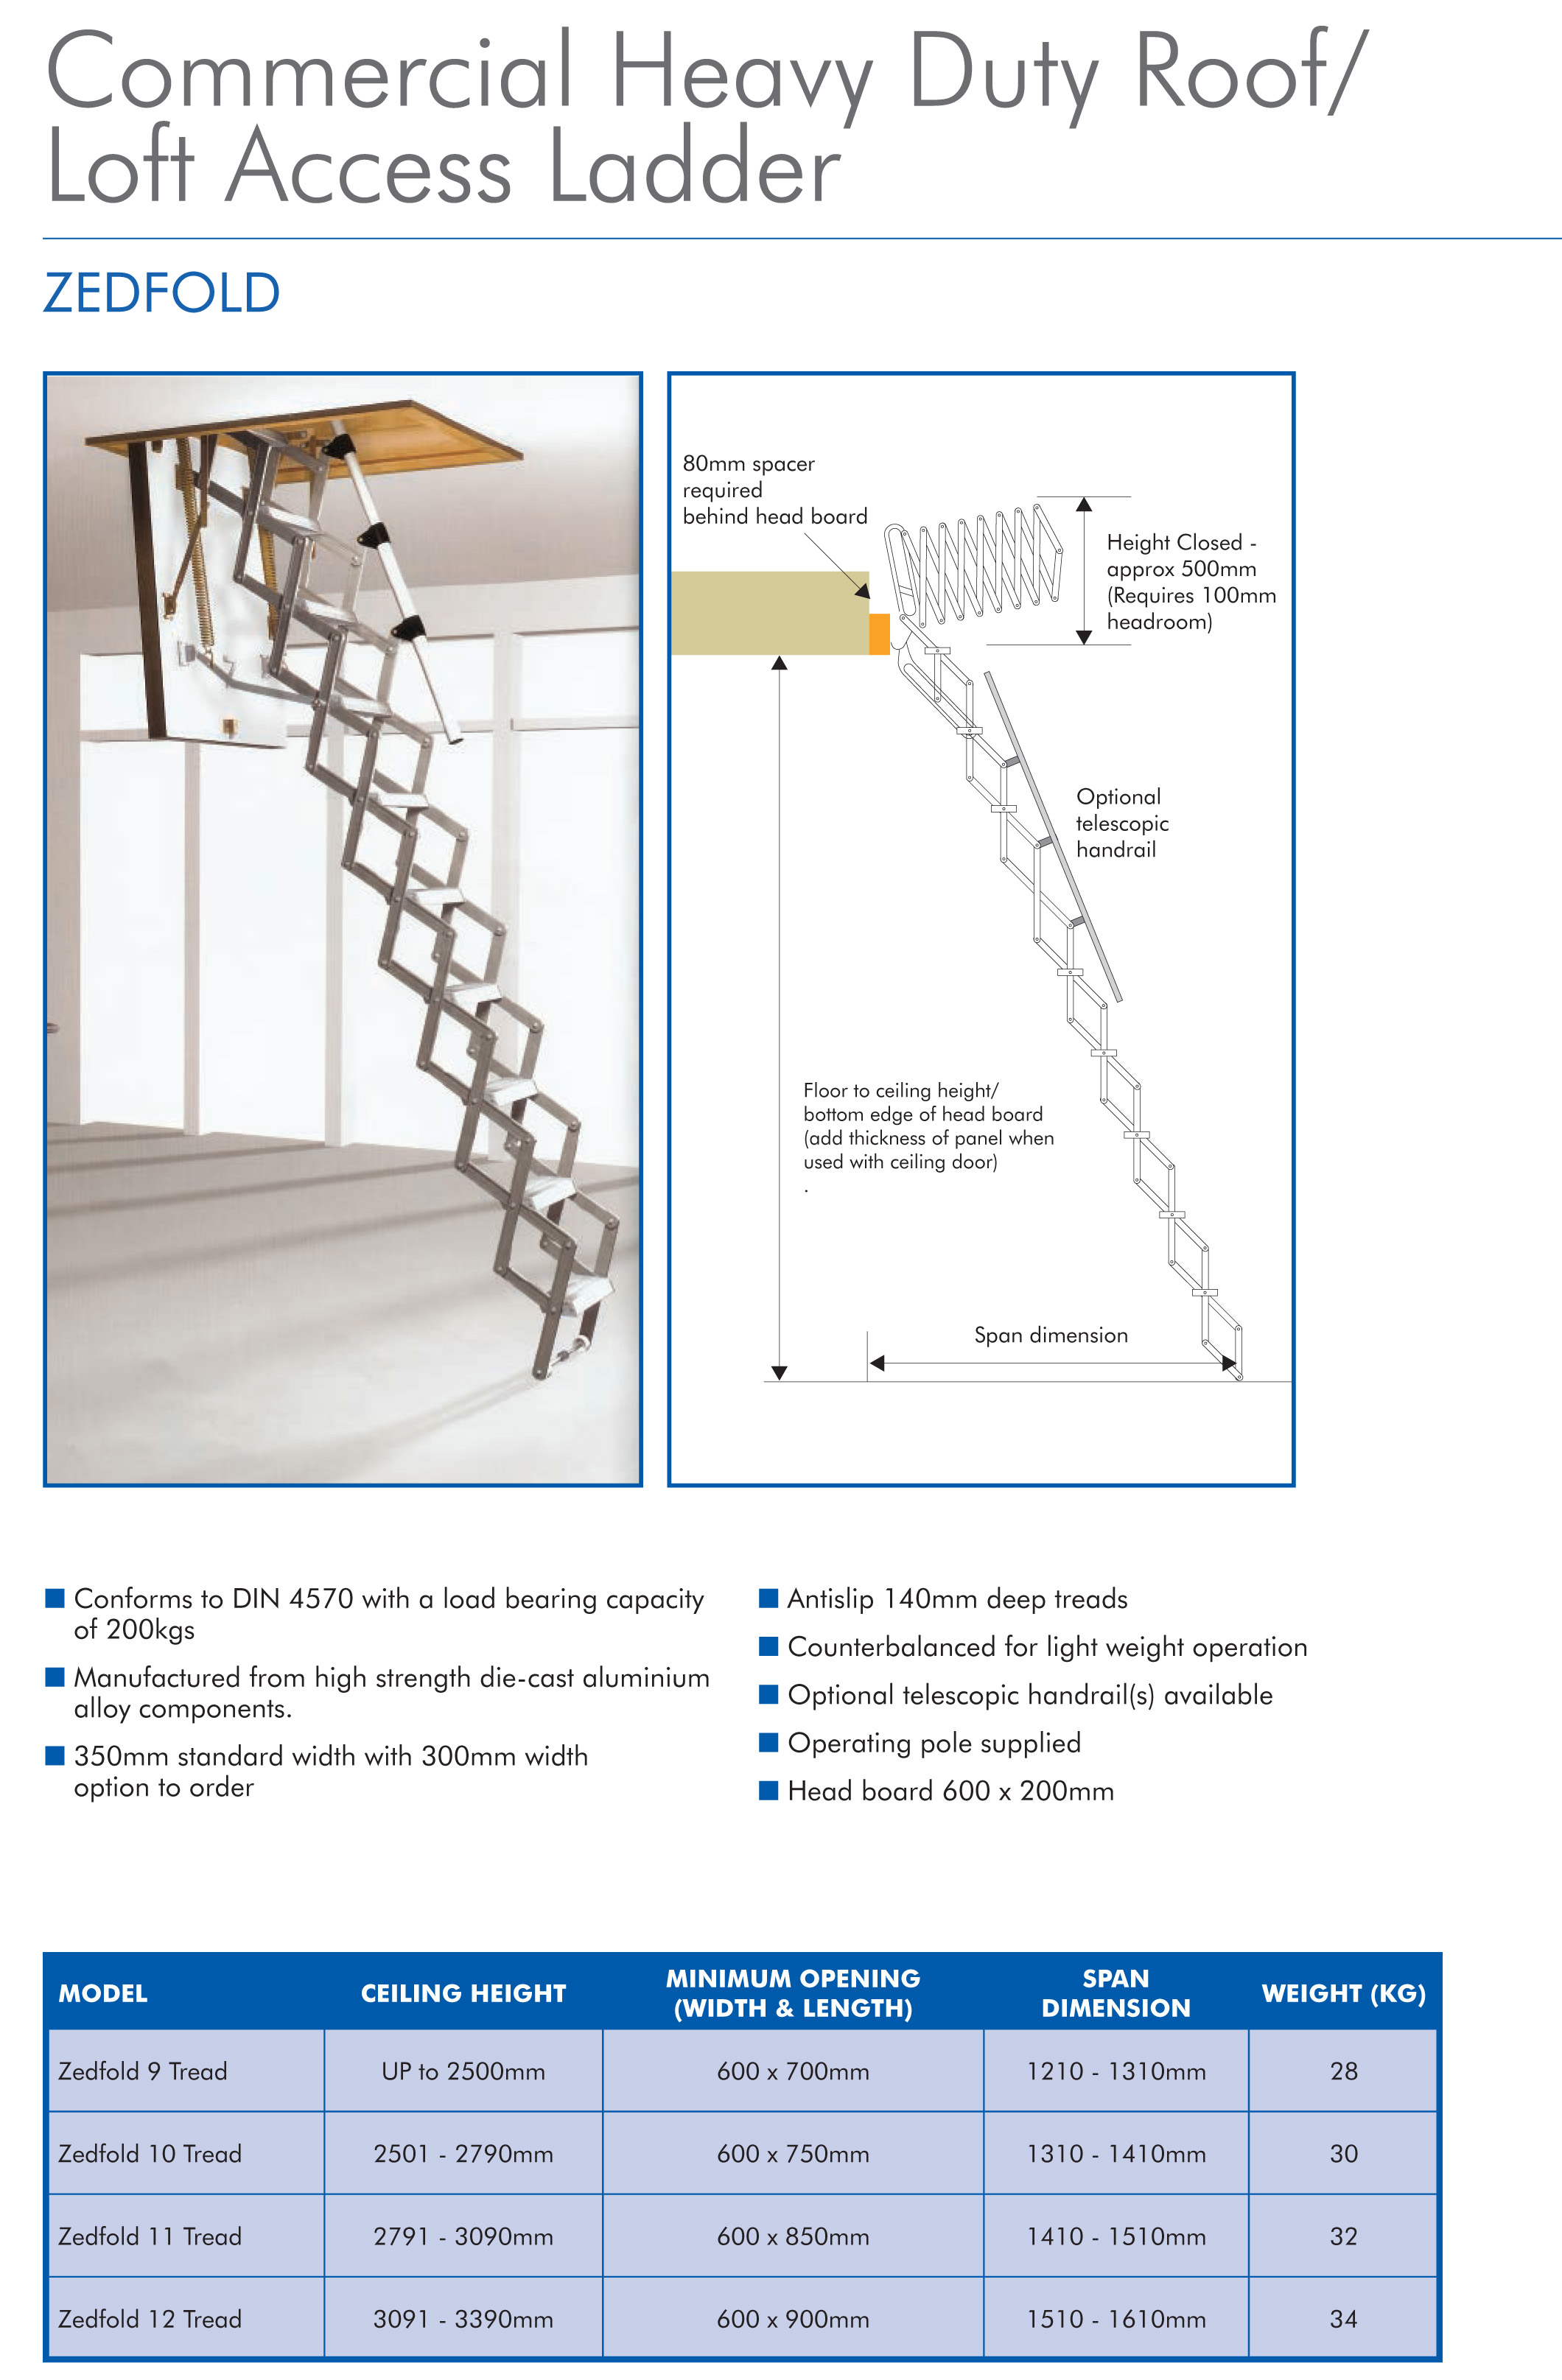 folding loft ladder with concertina zedfolding mechanism   Roof Access Ladder Drawing